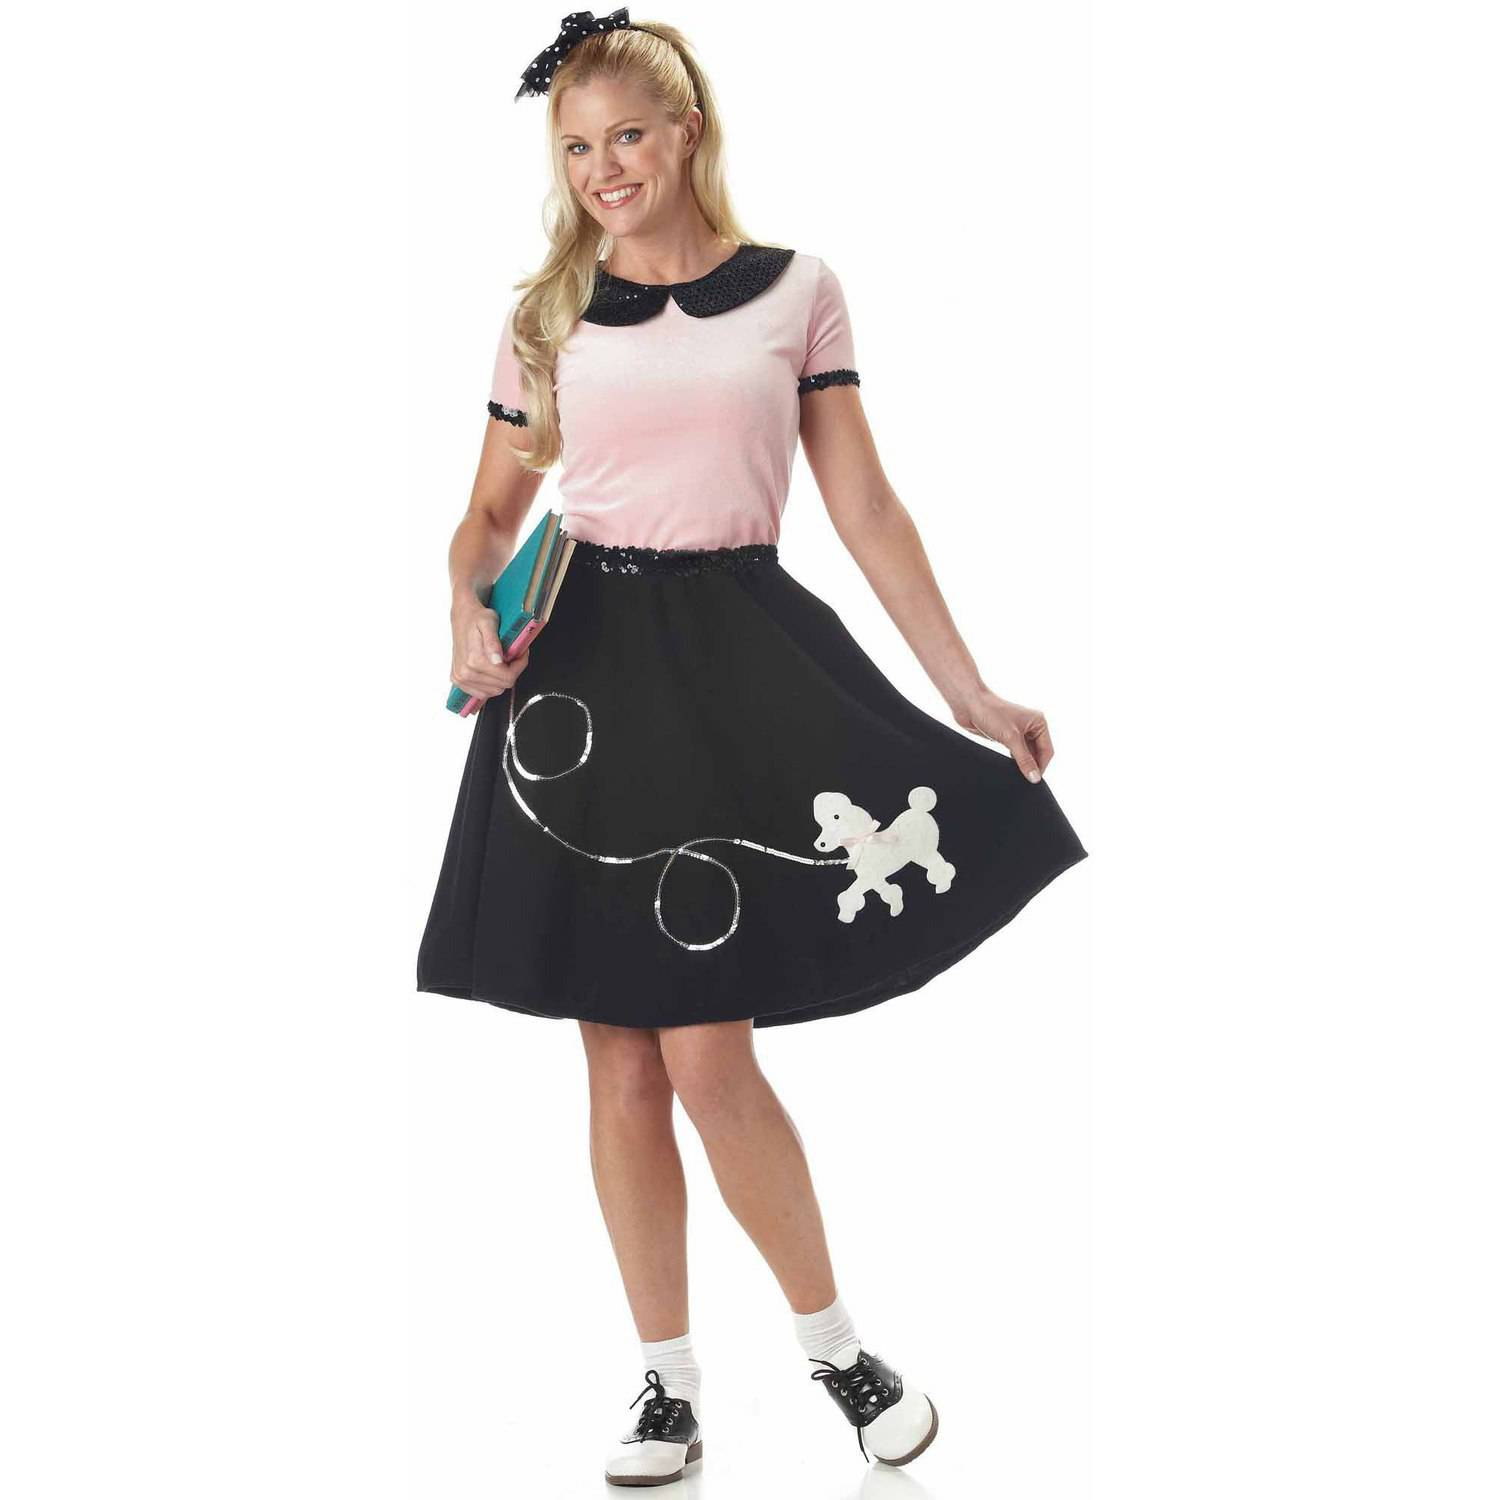 50u0027s Hop With Poodle Skirt Womenu0027s Adult Halloween Costume  sc 1 st  Walmart.com : target mens halloween costumes  - Germanpascual.Com